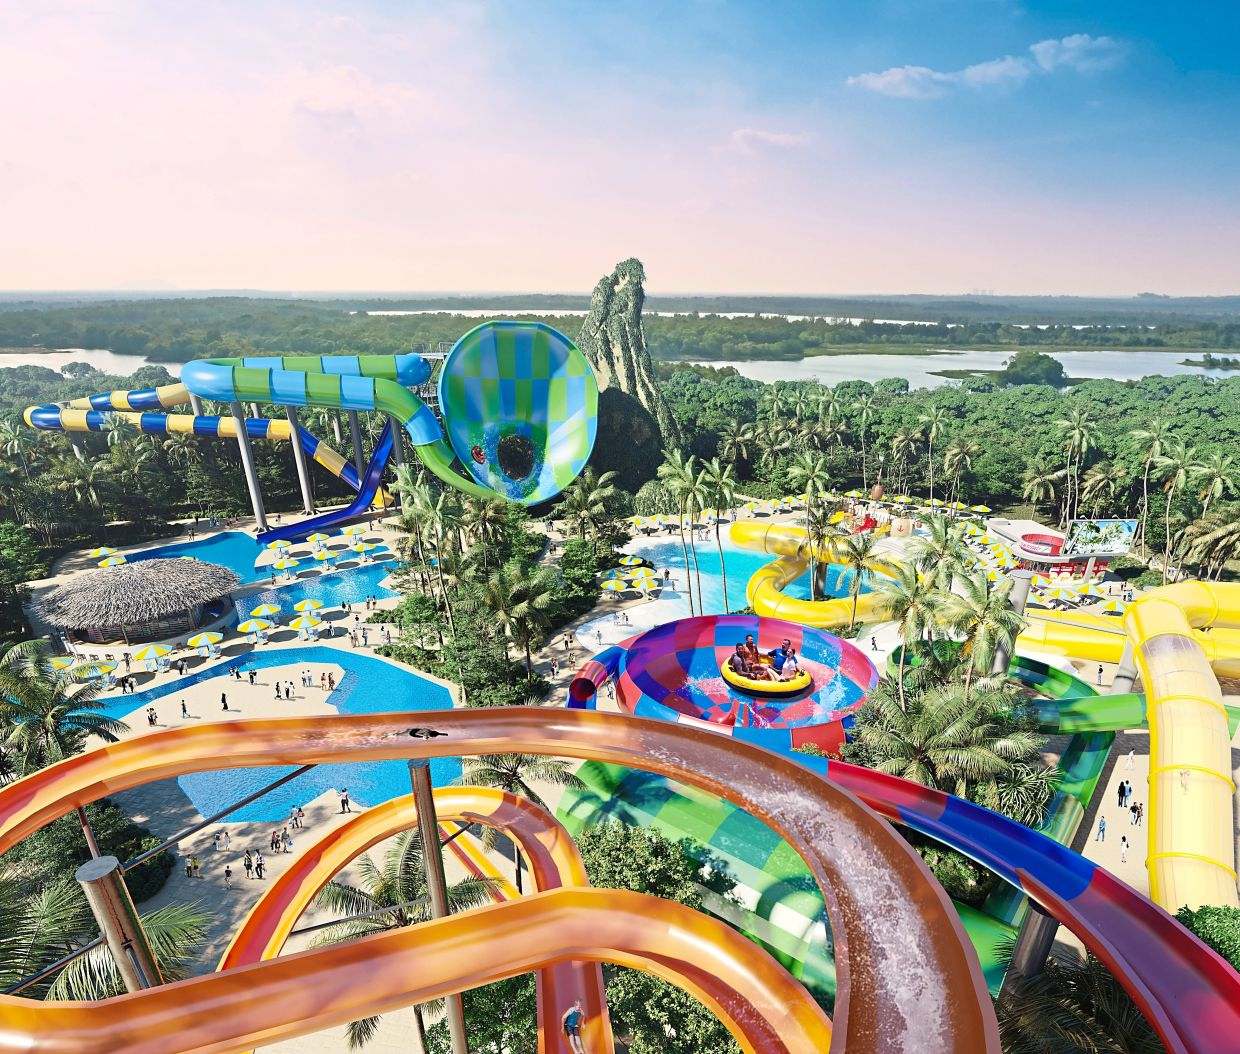 Splashmania features heart-pounding rides like the Free Fall, Ravage River and Thrilling Slide.